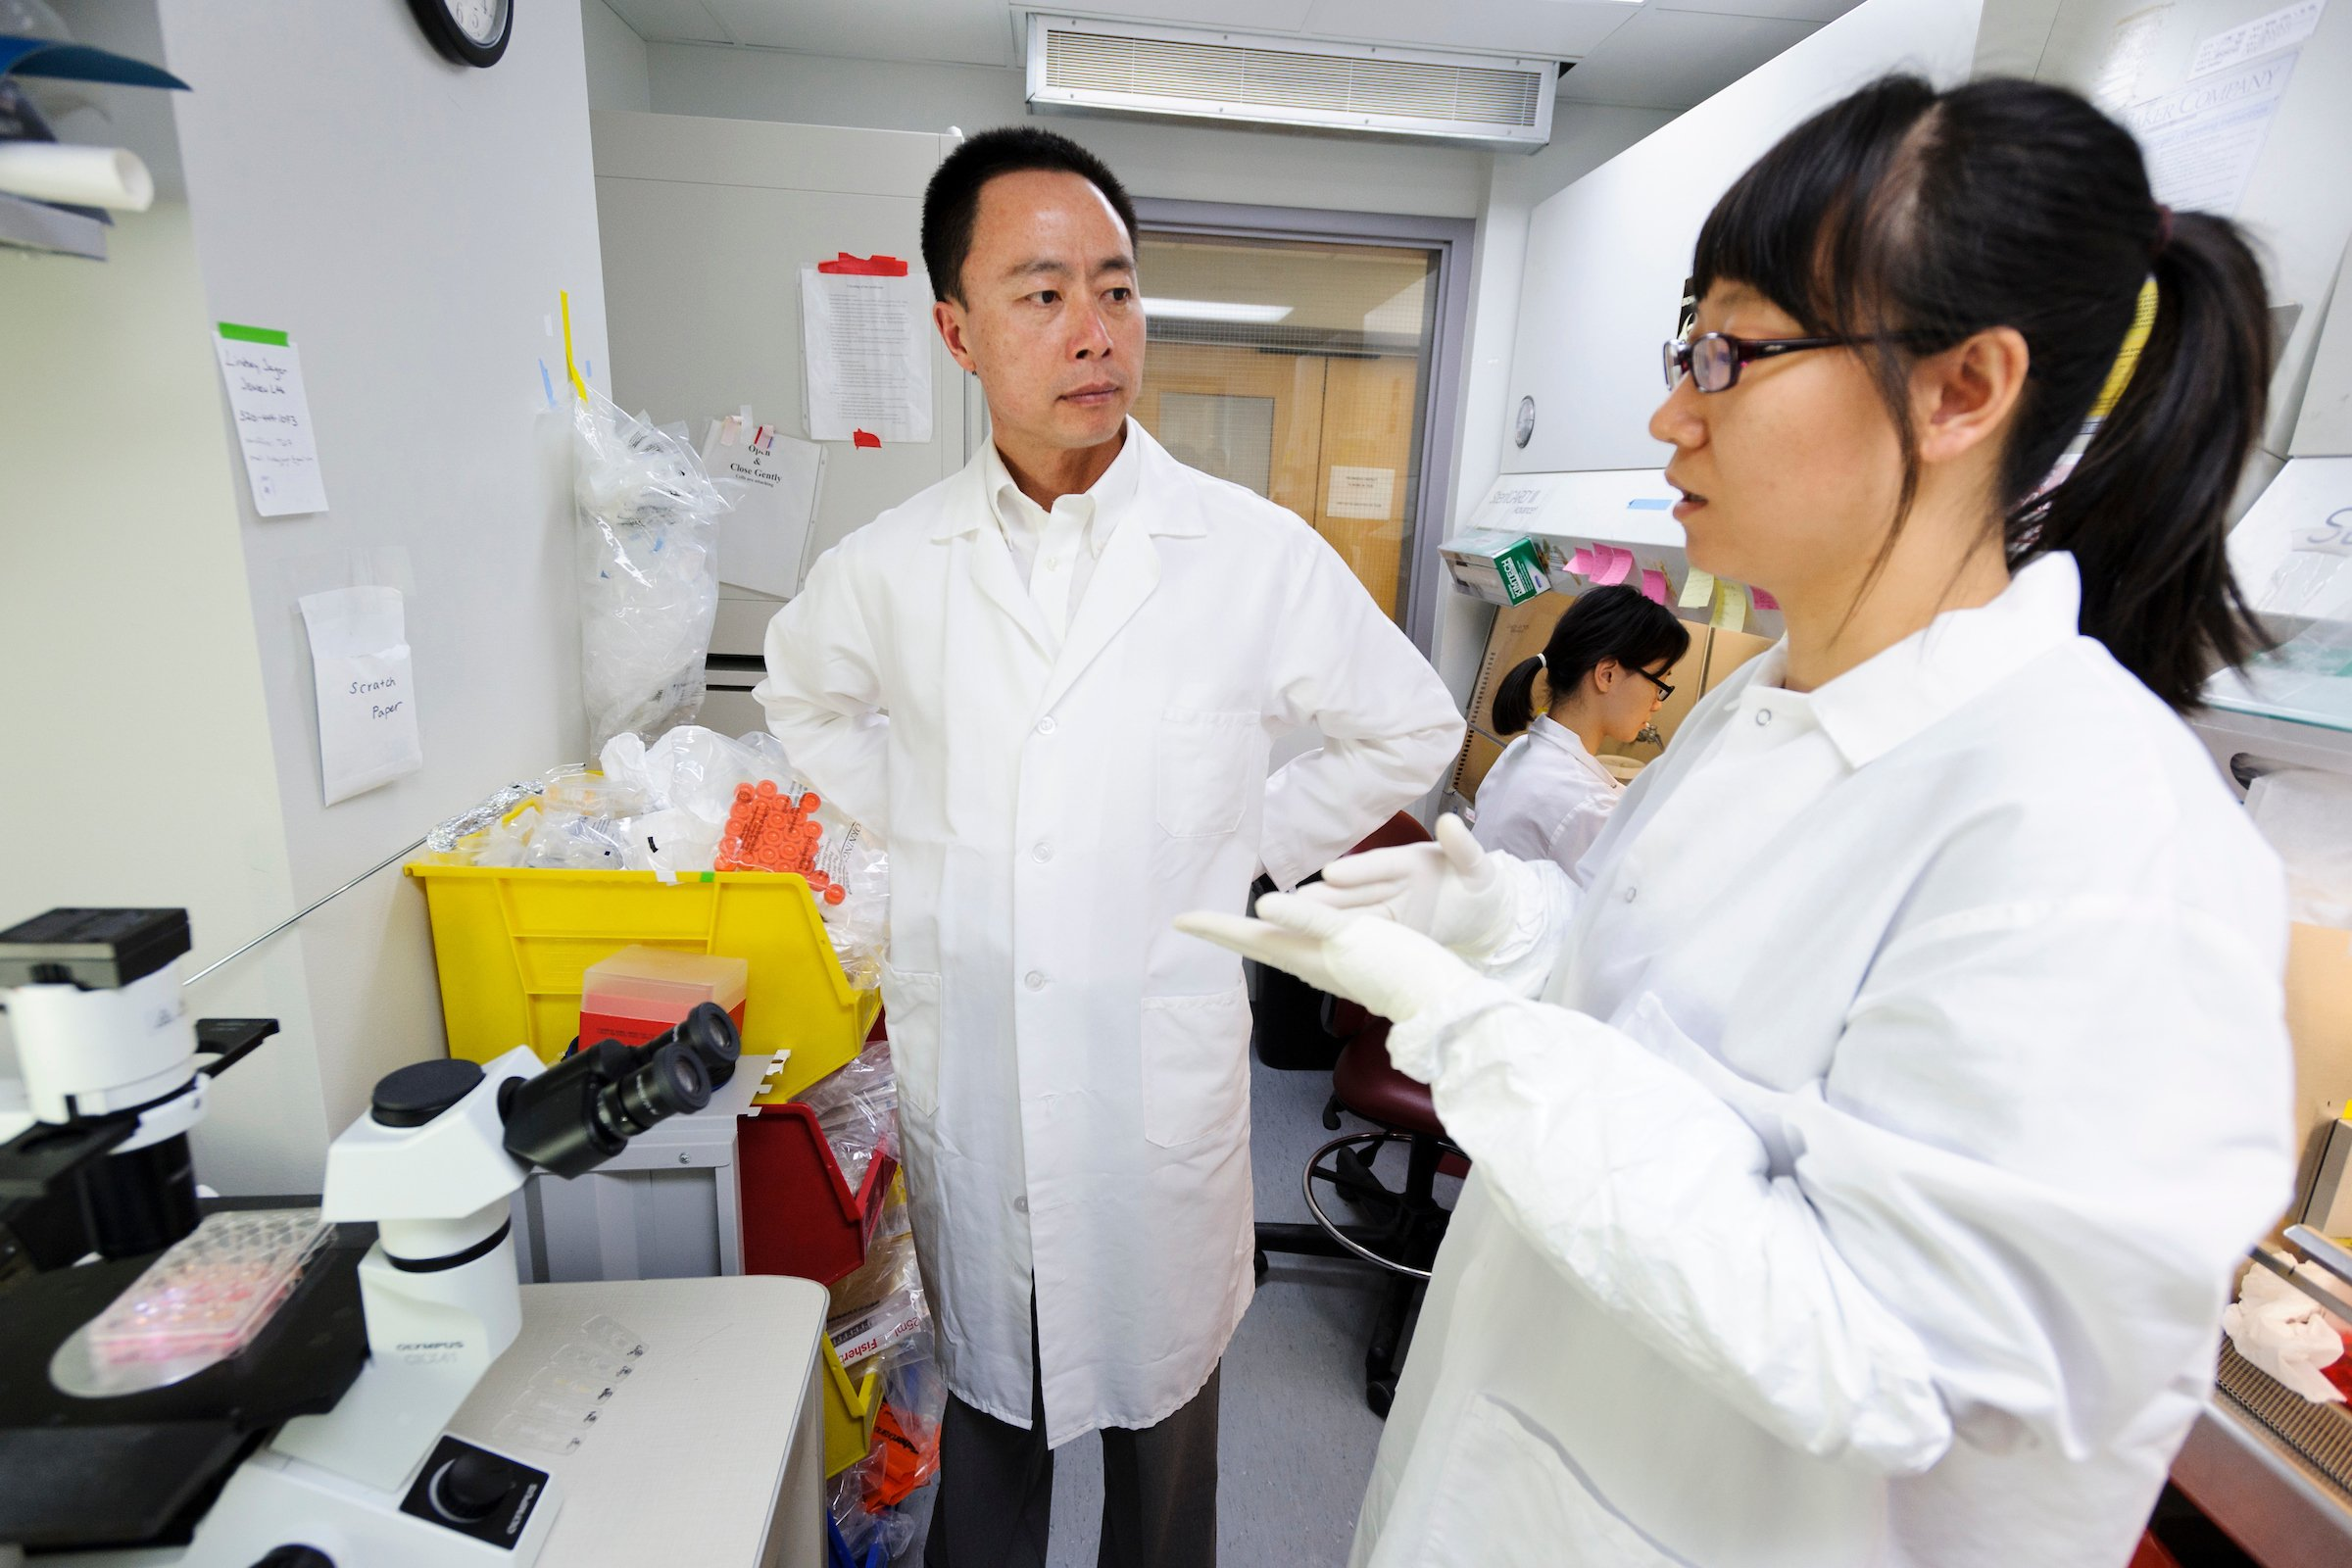 Su-Chun Zhang, professor of neuroscience in the School of Medicine and Public Health, talked with postdoctoral student Lin Yao as she prepared stem-cell cultures in Zhang's lab at UW–Madison's Waisman Center in 2013. Photo: Jeff Miller, University of Wisconsin-Madison